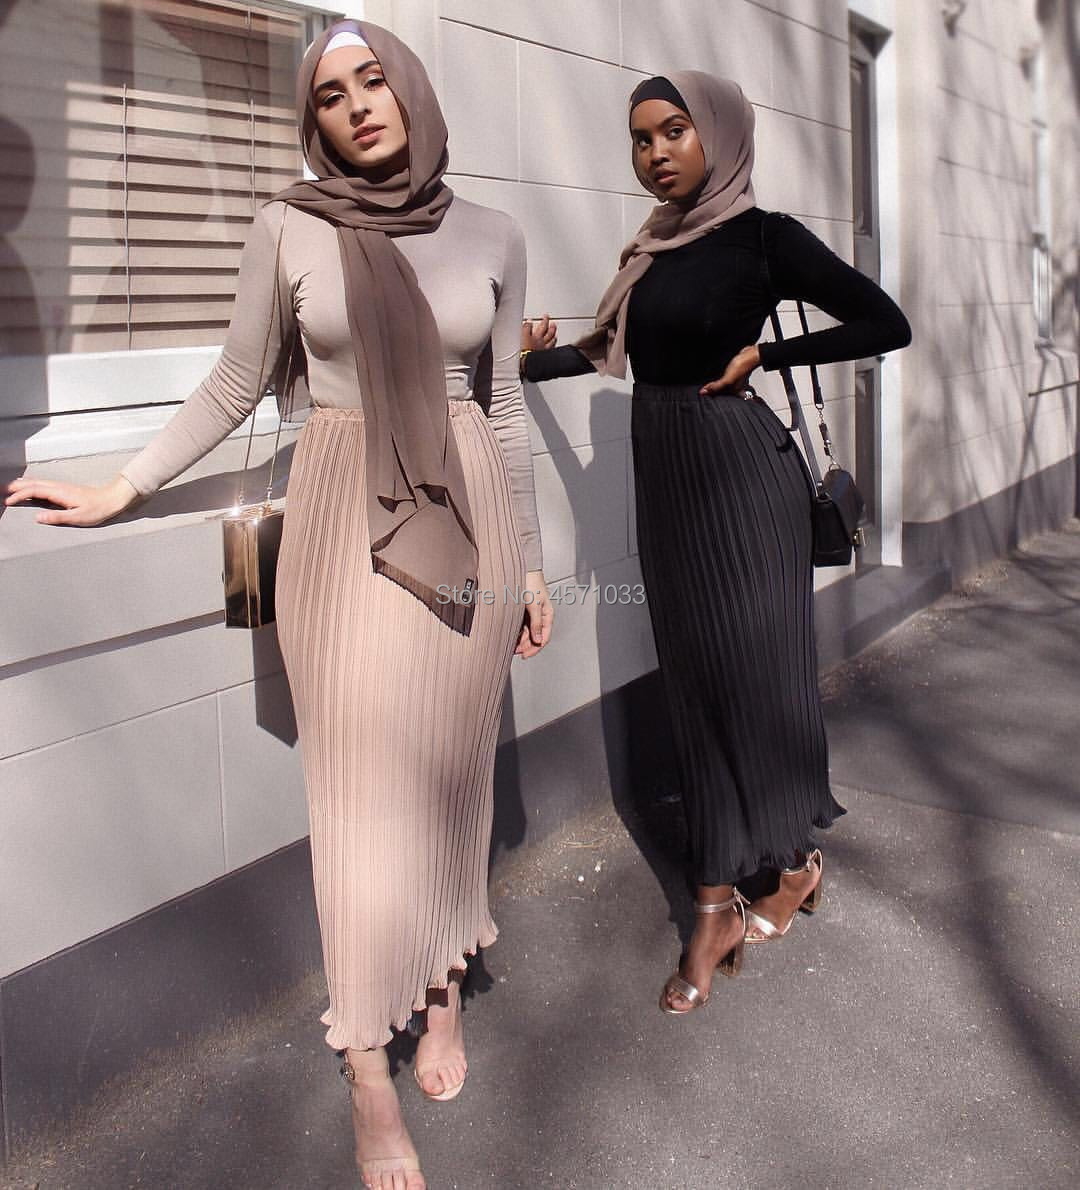 Fashion Womens Pleated Skirt Chiffon Cotton Long Muslim Bottoms Ankle-Length Islamic Party Clothing Winter Free Shipping